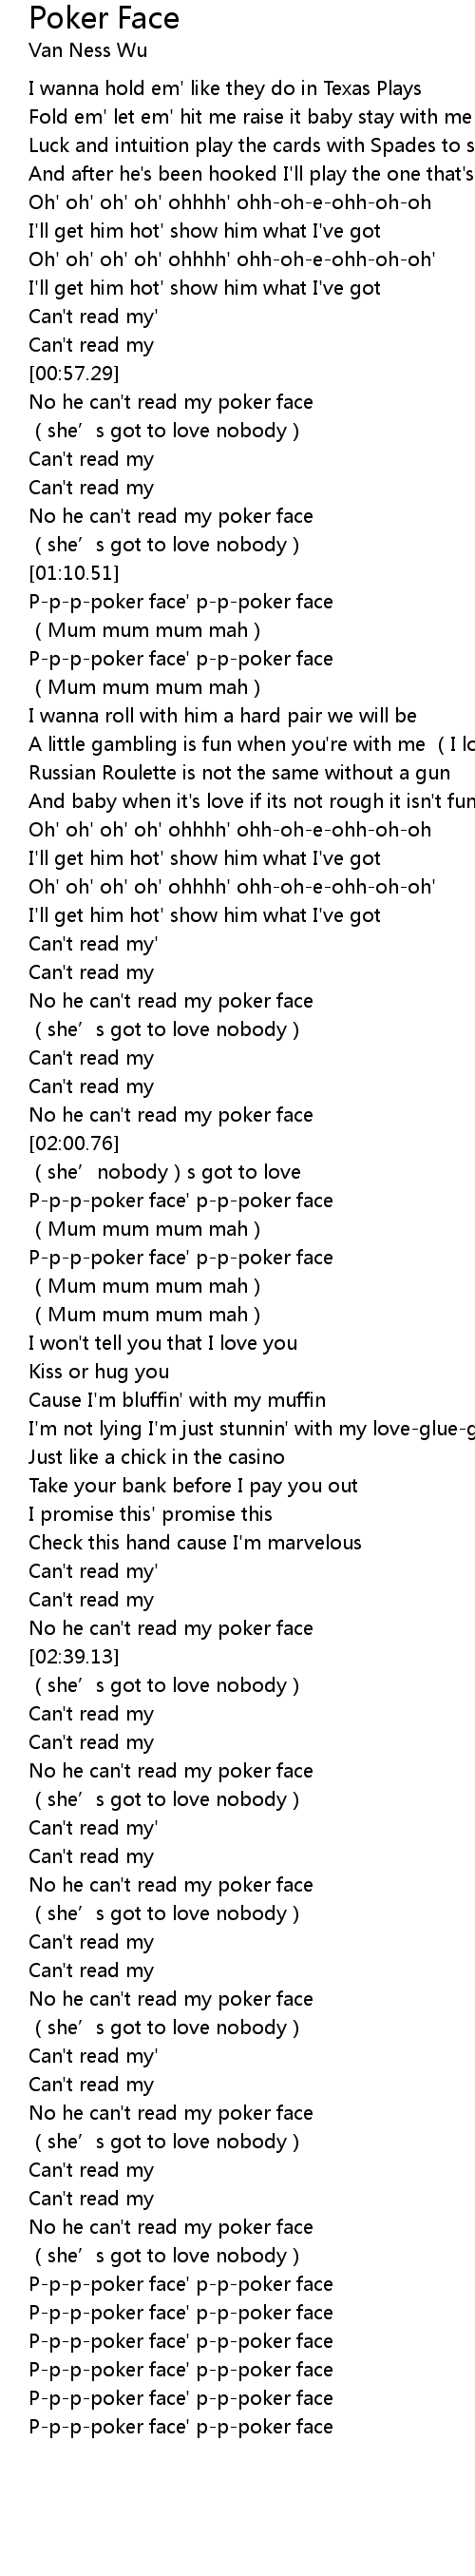 Poker Face Lyrics Follow Lyrics